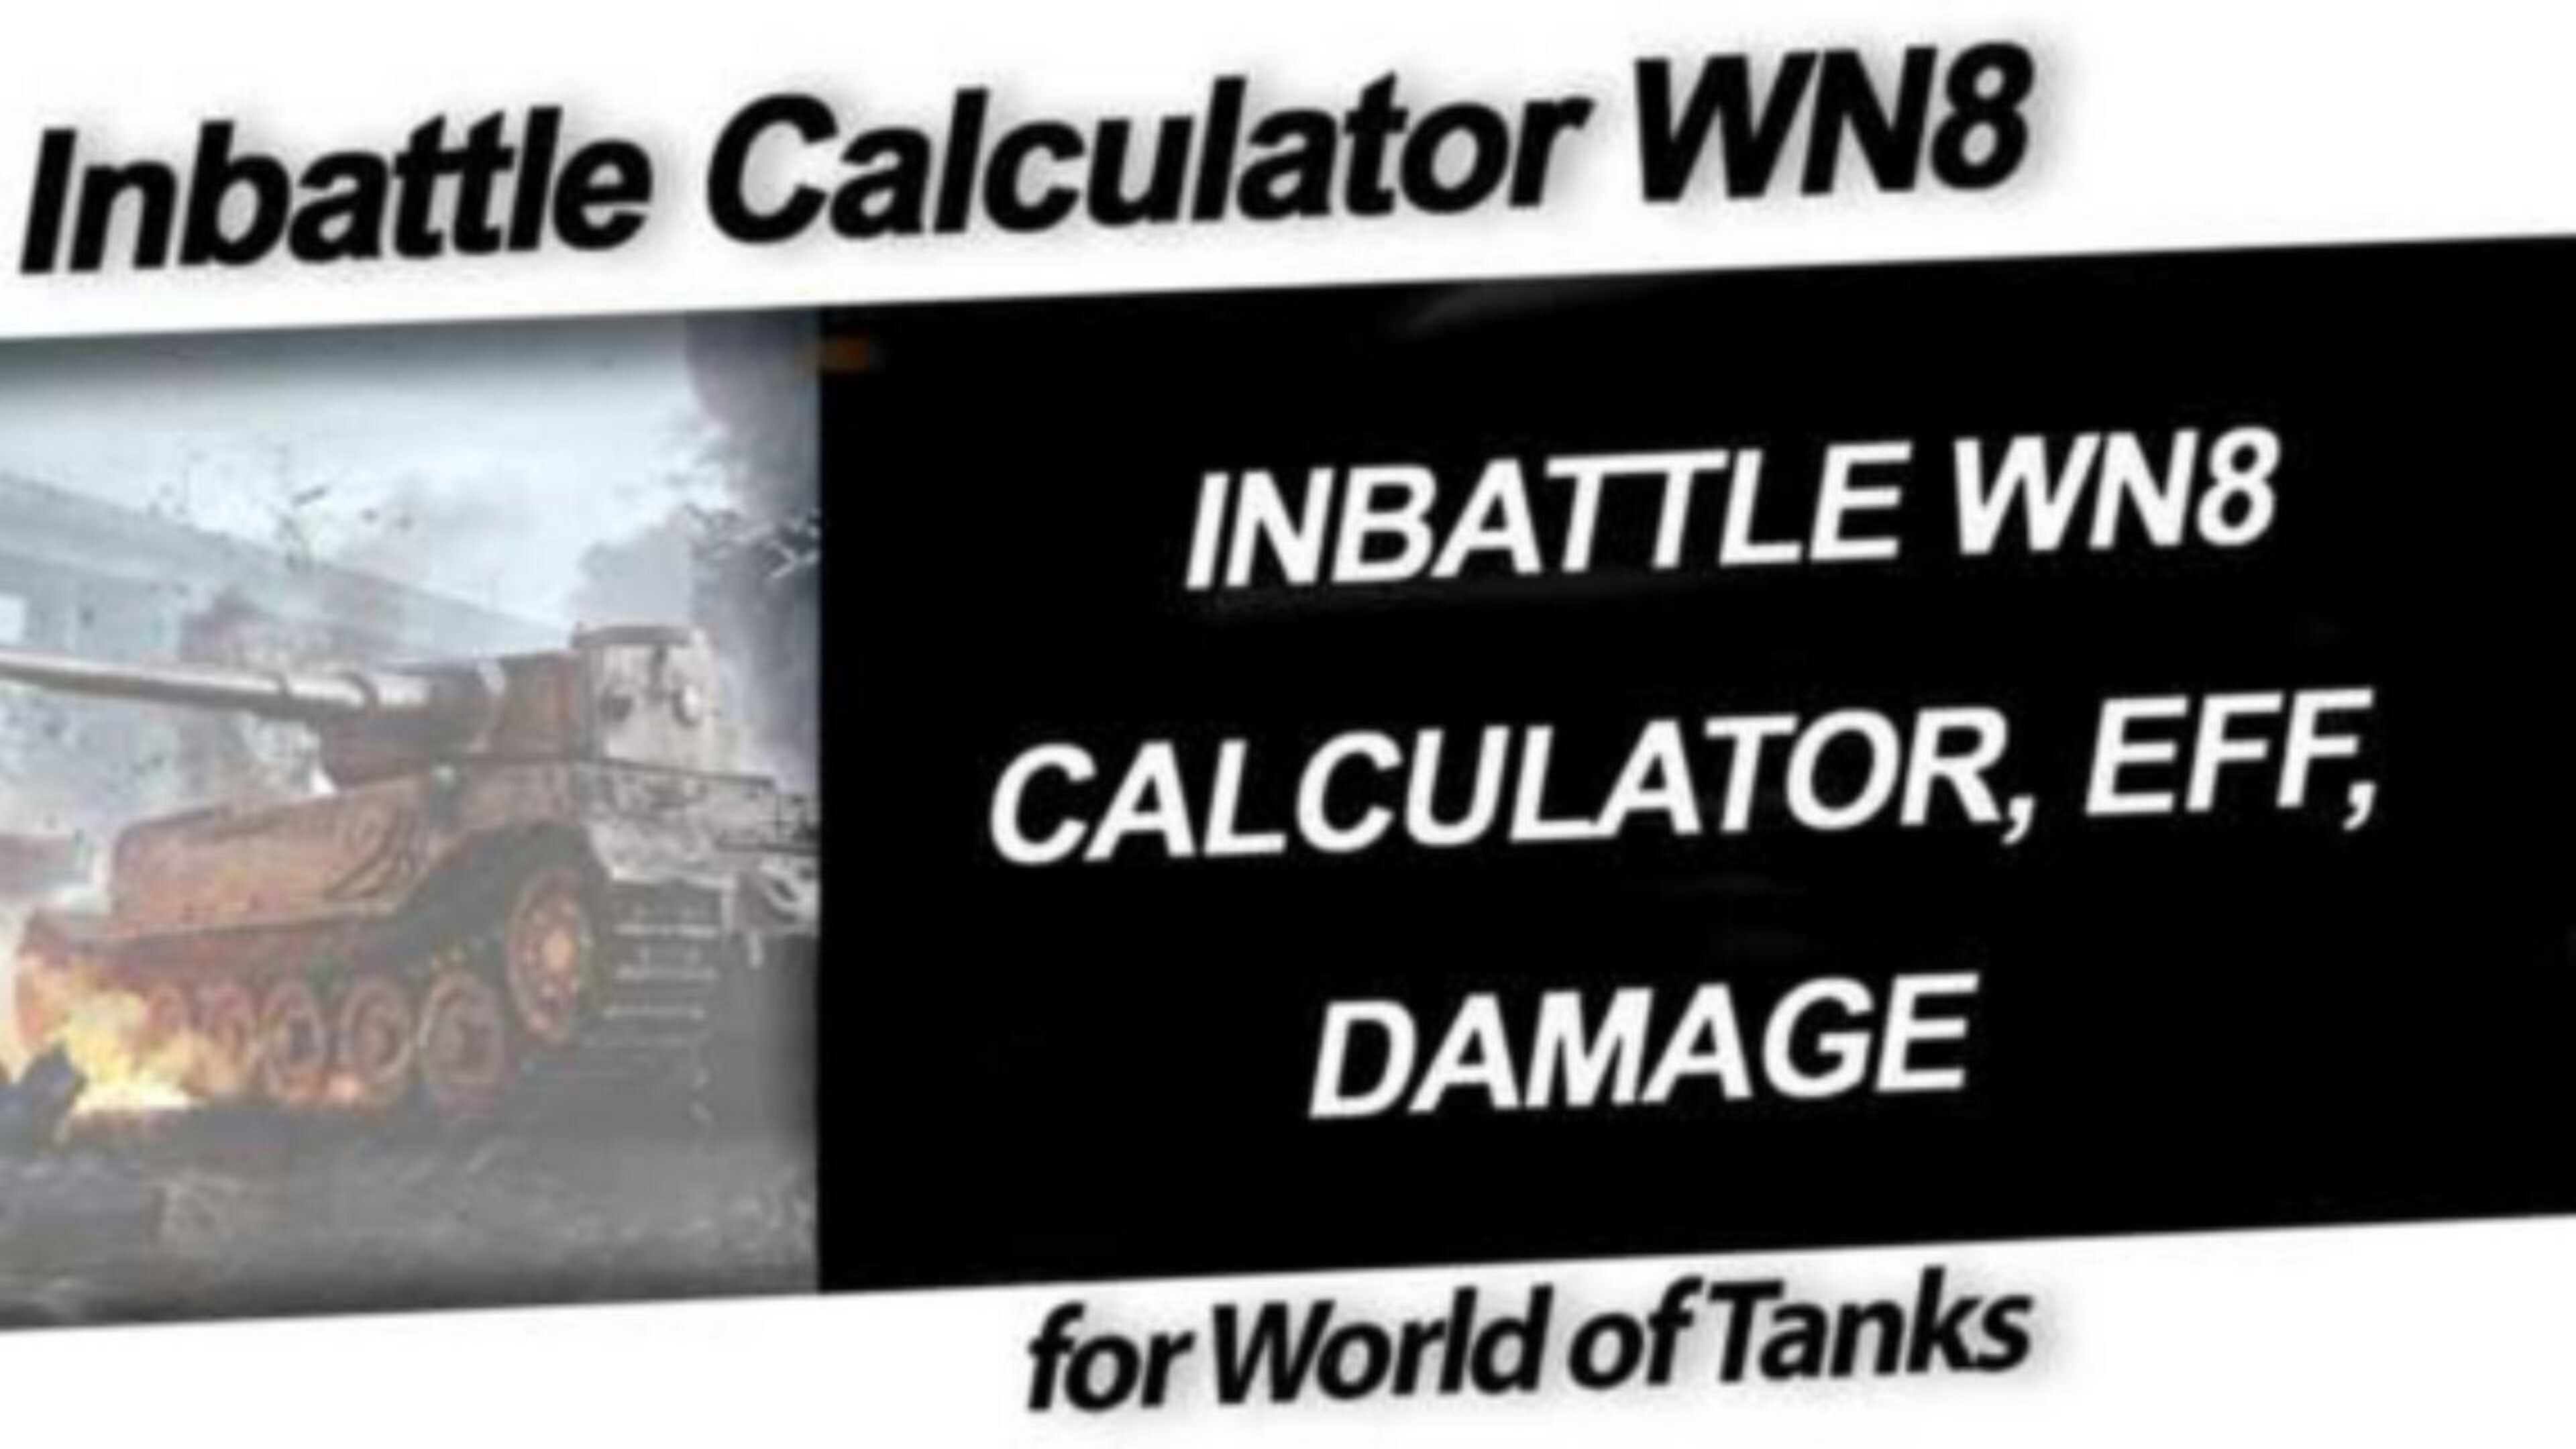 INBATTLE WN8 CALCULATOR, EFF, DAMAGE